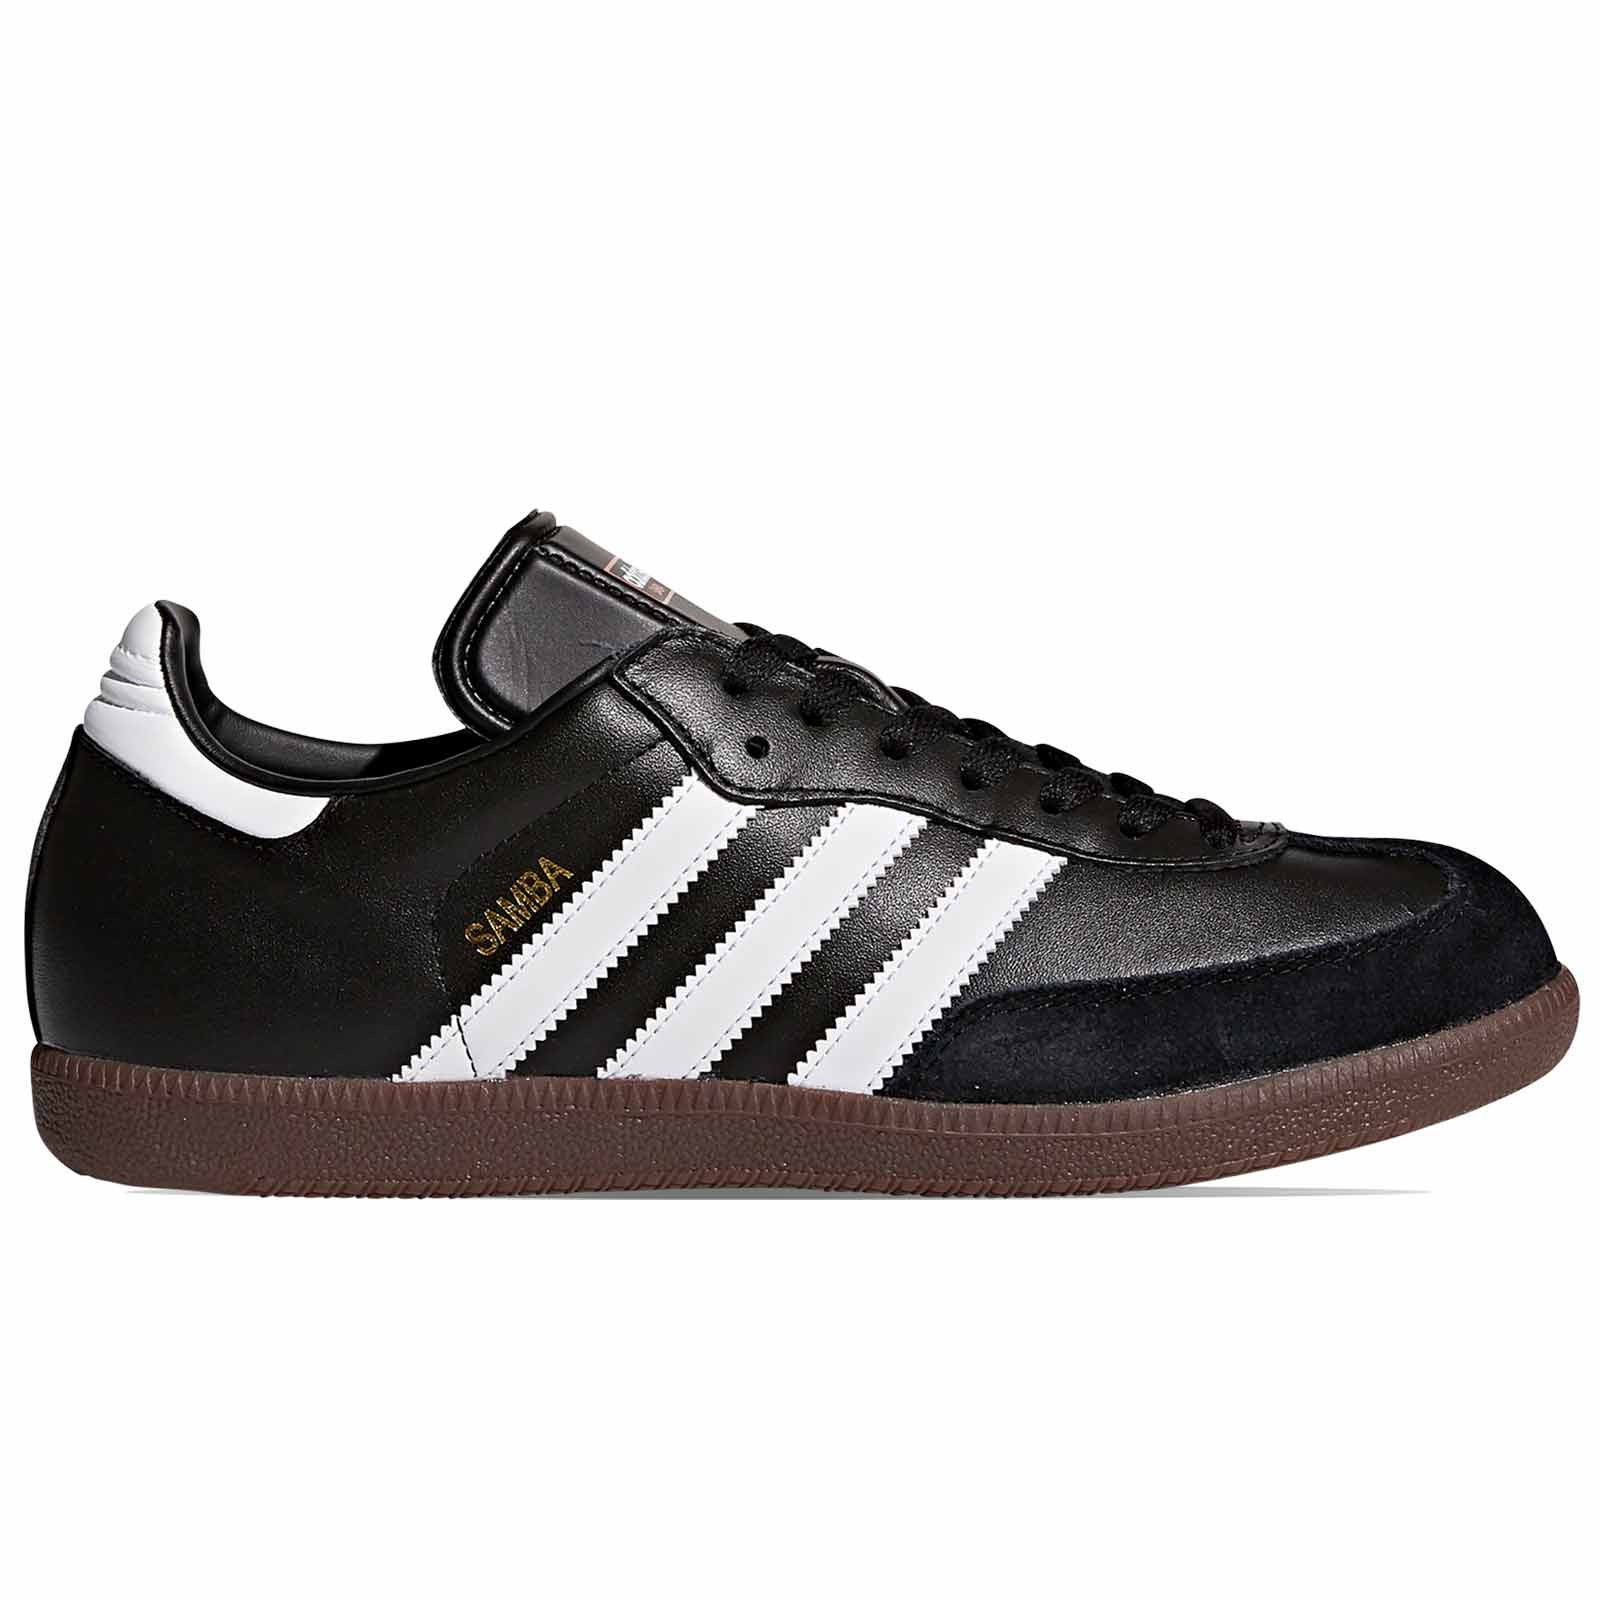 Saca la aseguranza cuadrado ecuación  Limited Time Deals·New Deals Everyday adidas samba para mujer, OFF 76%,Buy!